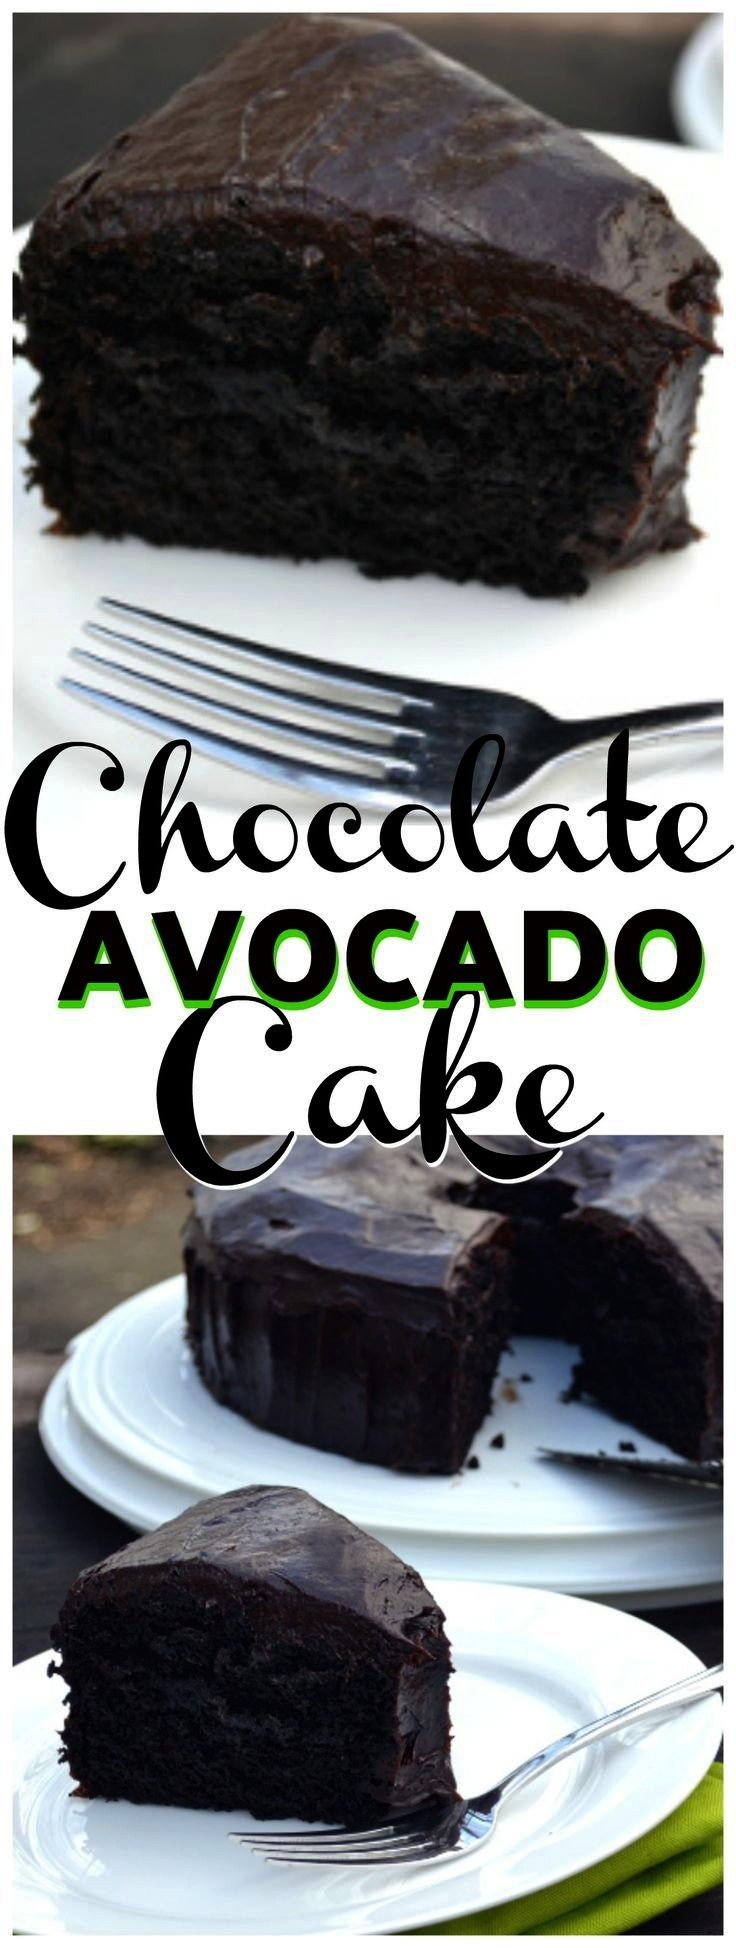 Avocado Cake With Chocolate Avocado Buttercream Frosting - Crafty Cooking Mama Chocolate Avocado Ca